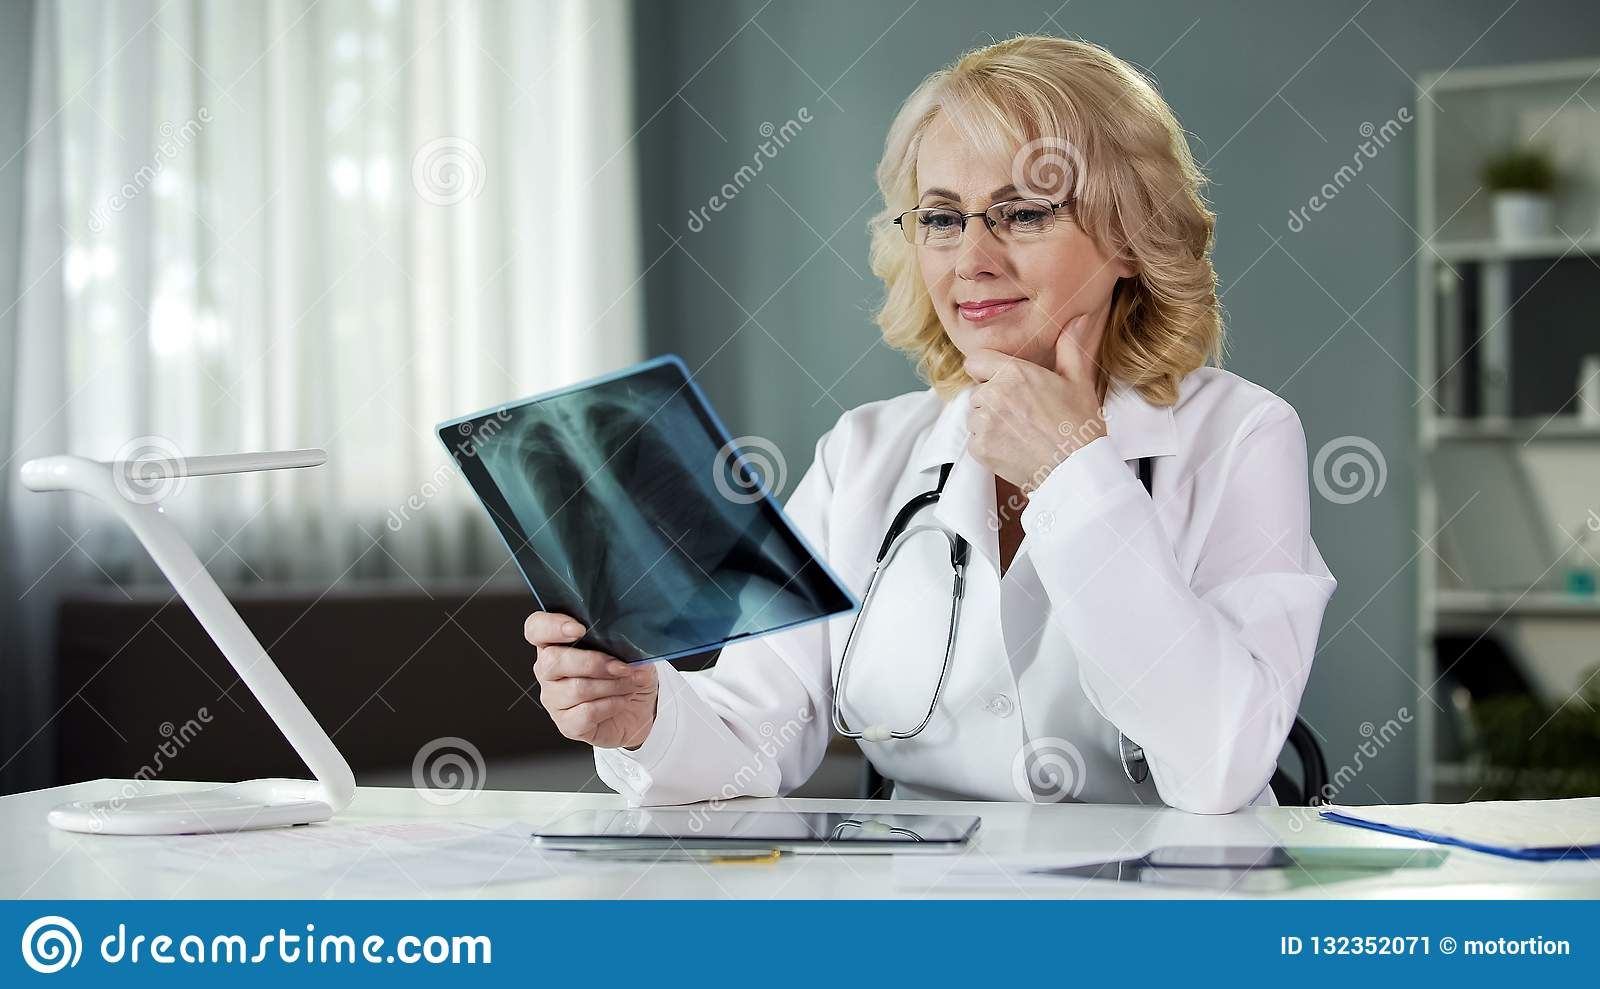 Experienced female radiologist studying X-ray picture, qualified diagnostics